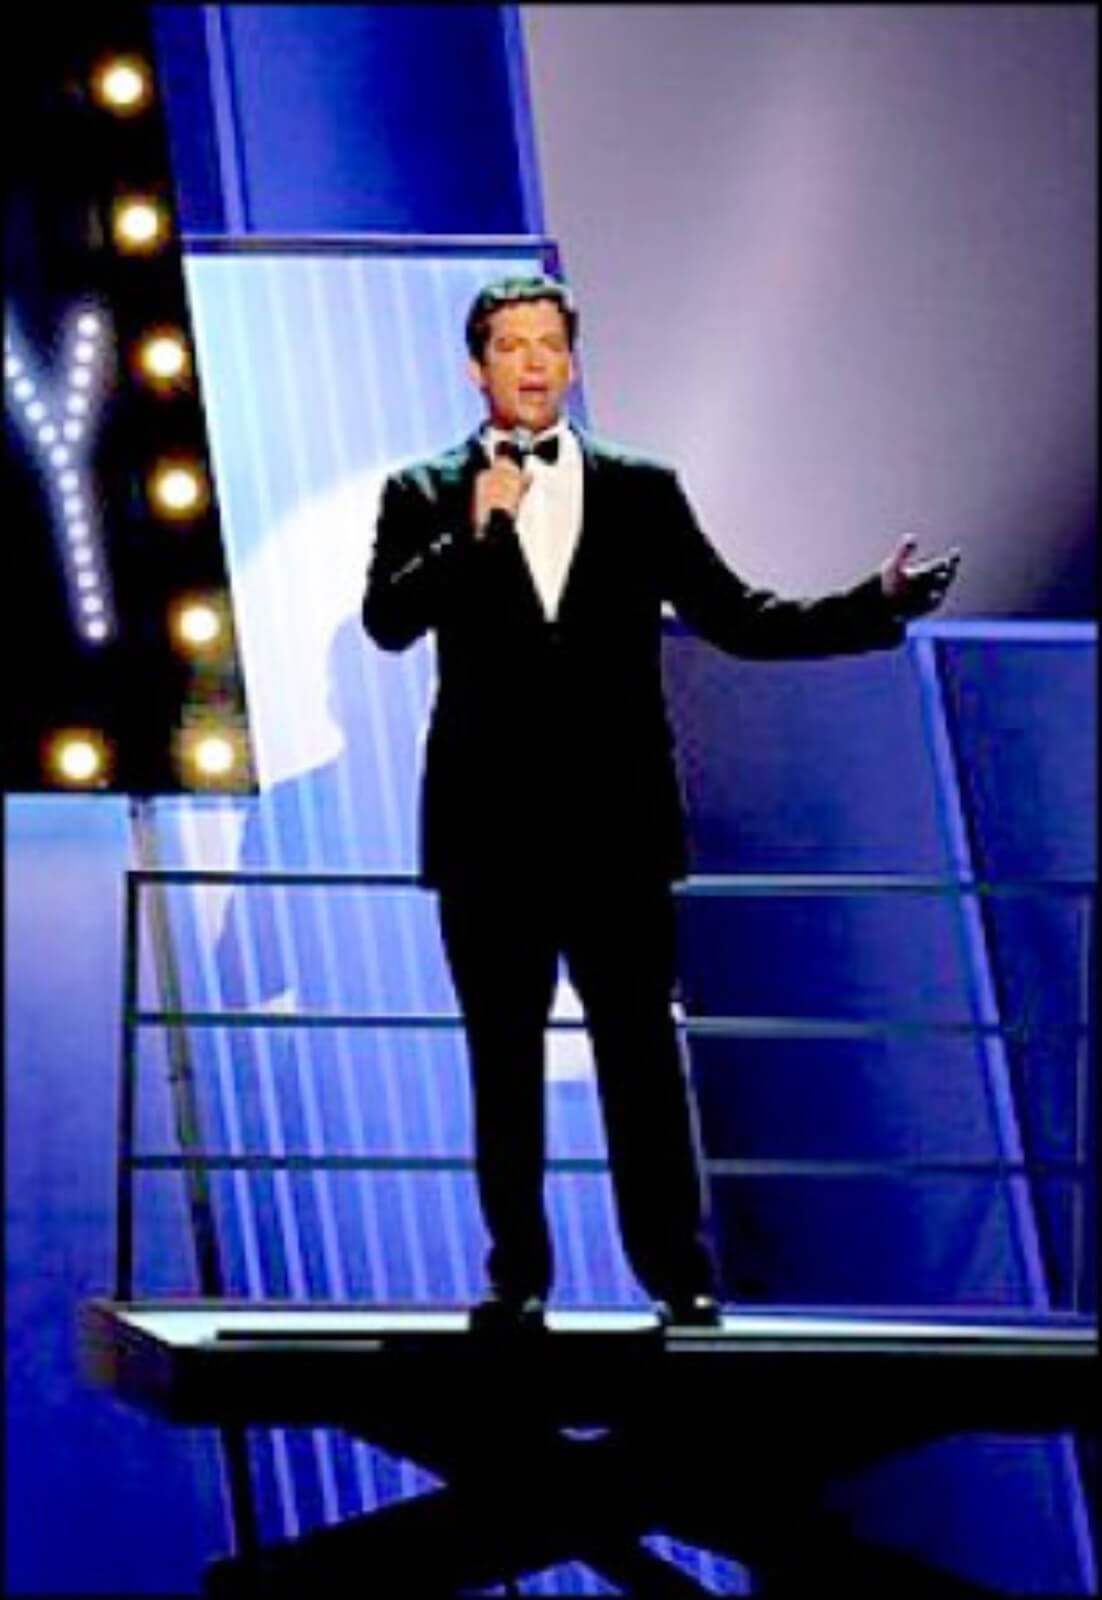 """Harry Connick Jr. singing """"High Anxiety"""" in a black tie and tux with a microphone."""